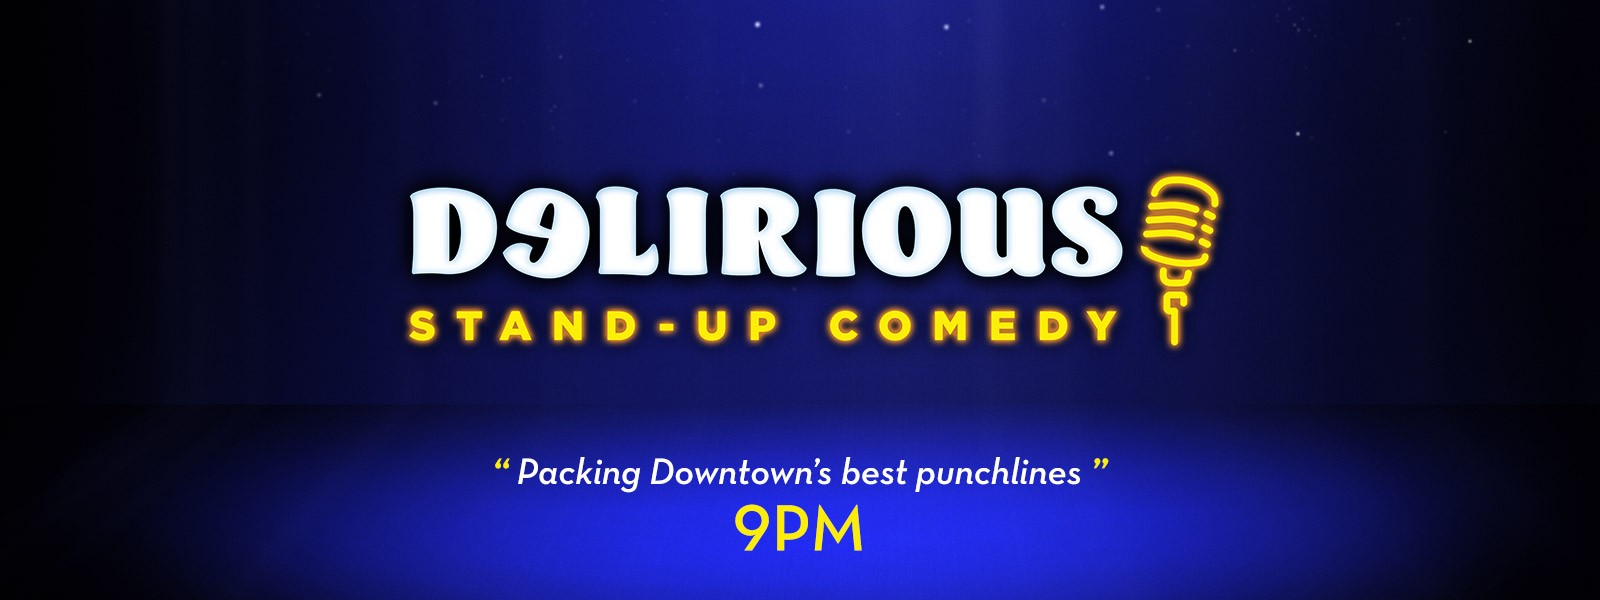 Delirious Comedy Club Logo